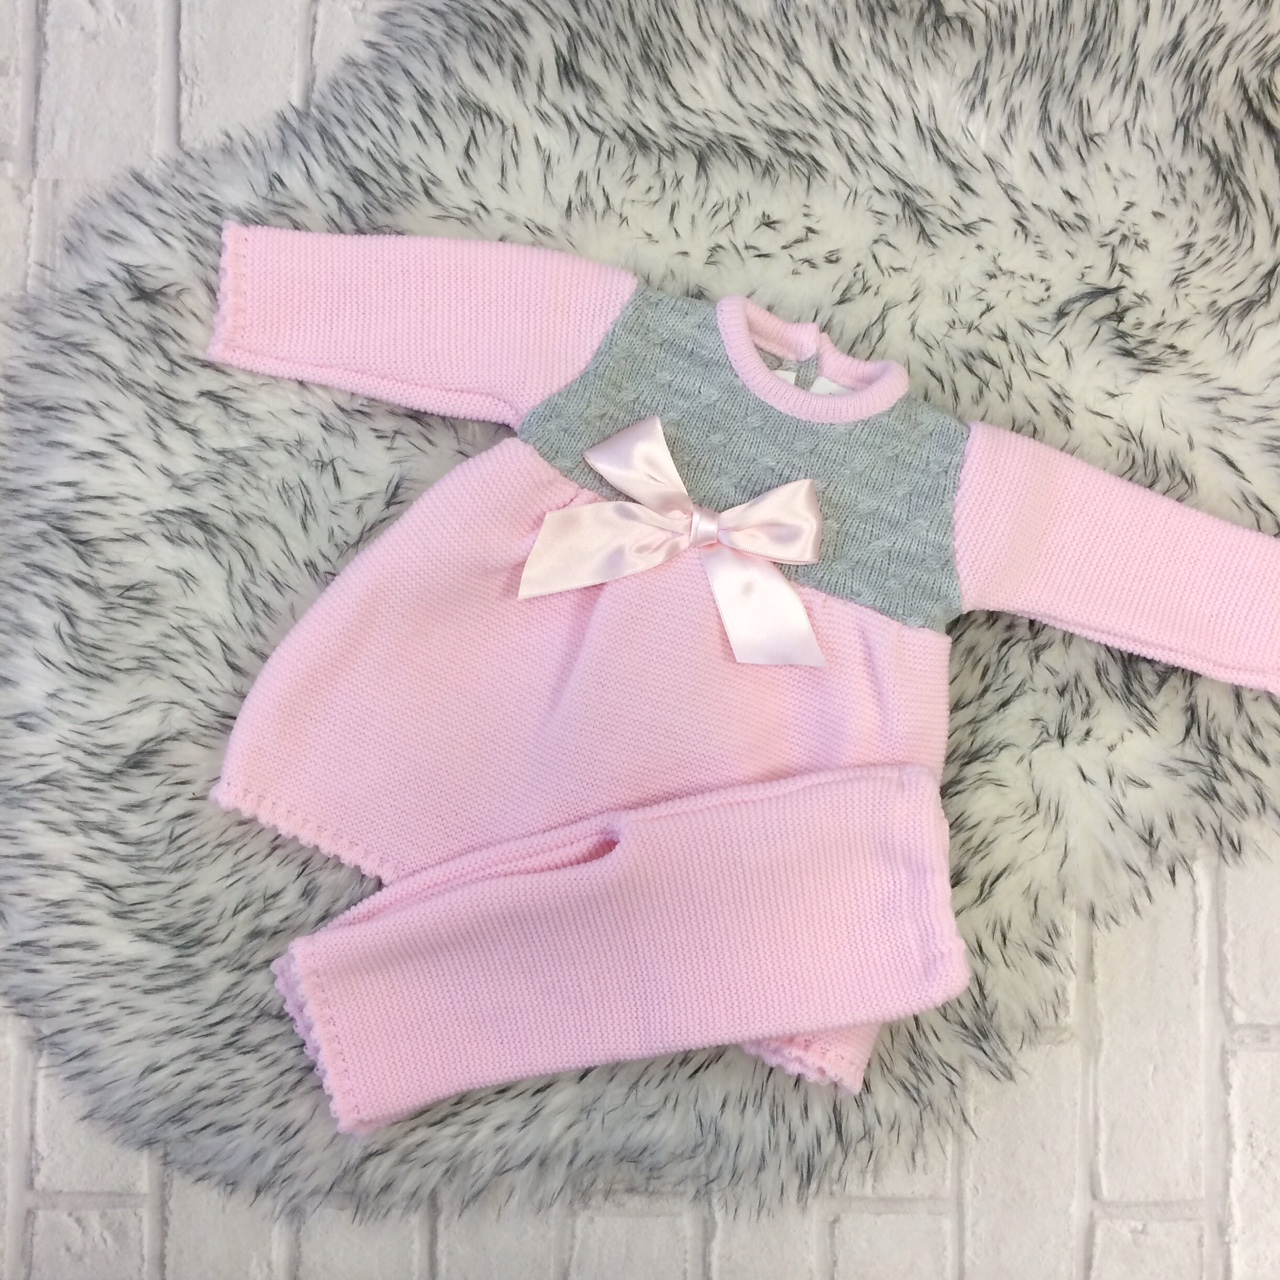 a30d1a790435 Baby Girls Pink Knitted Dress   Leggings Set